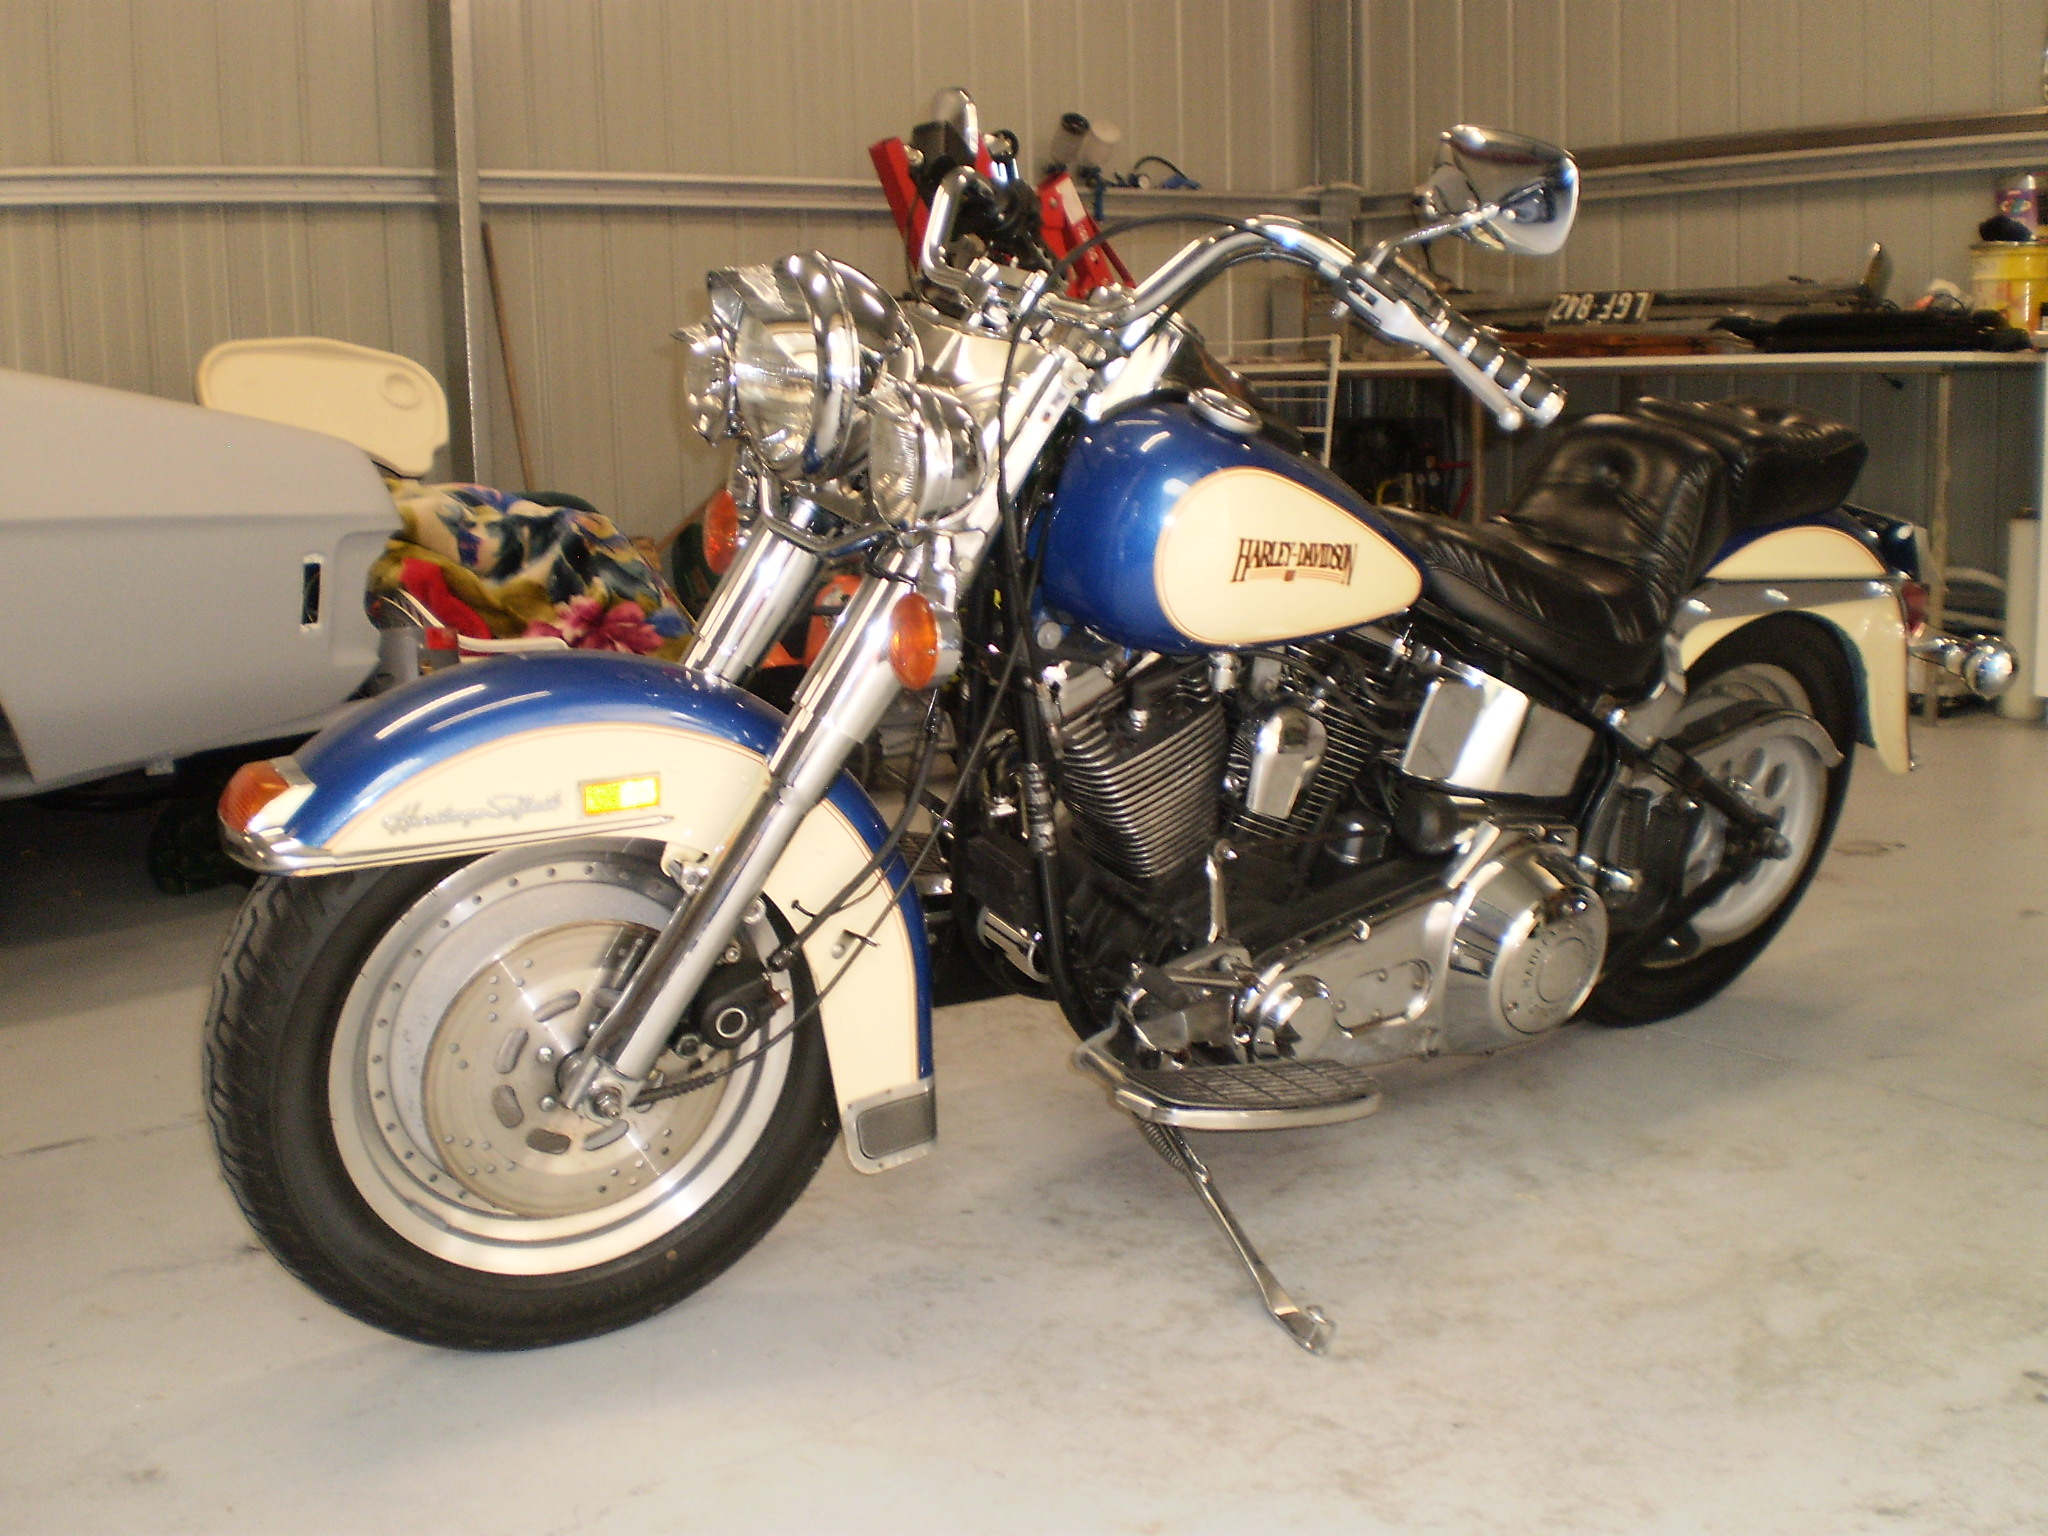 1987 Harley Heritage import